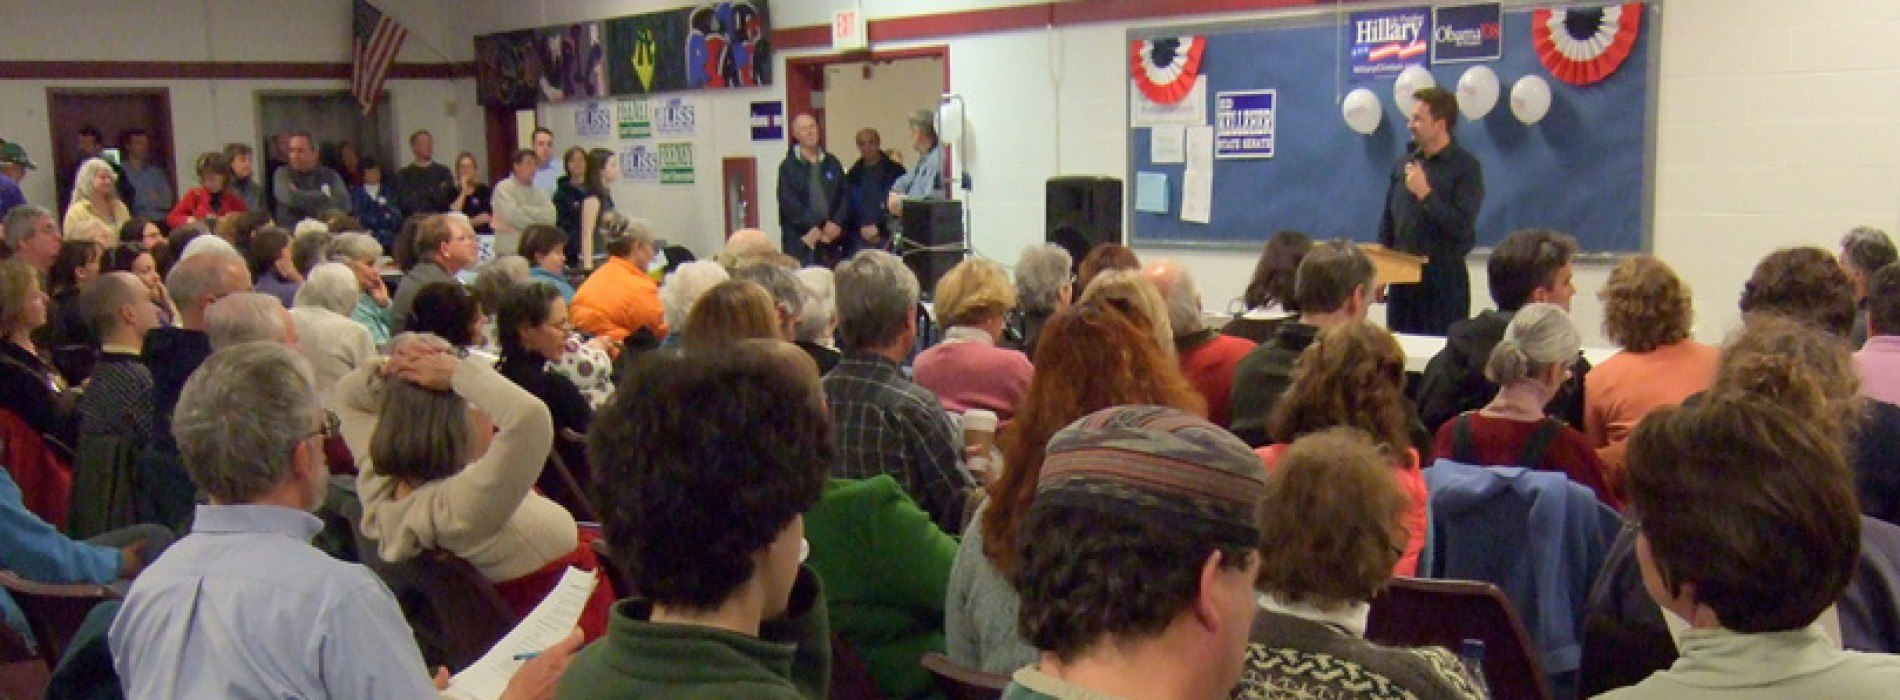 Caucusing: Your opportunity to take over the Democratic Party